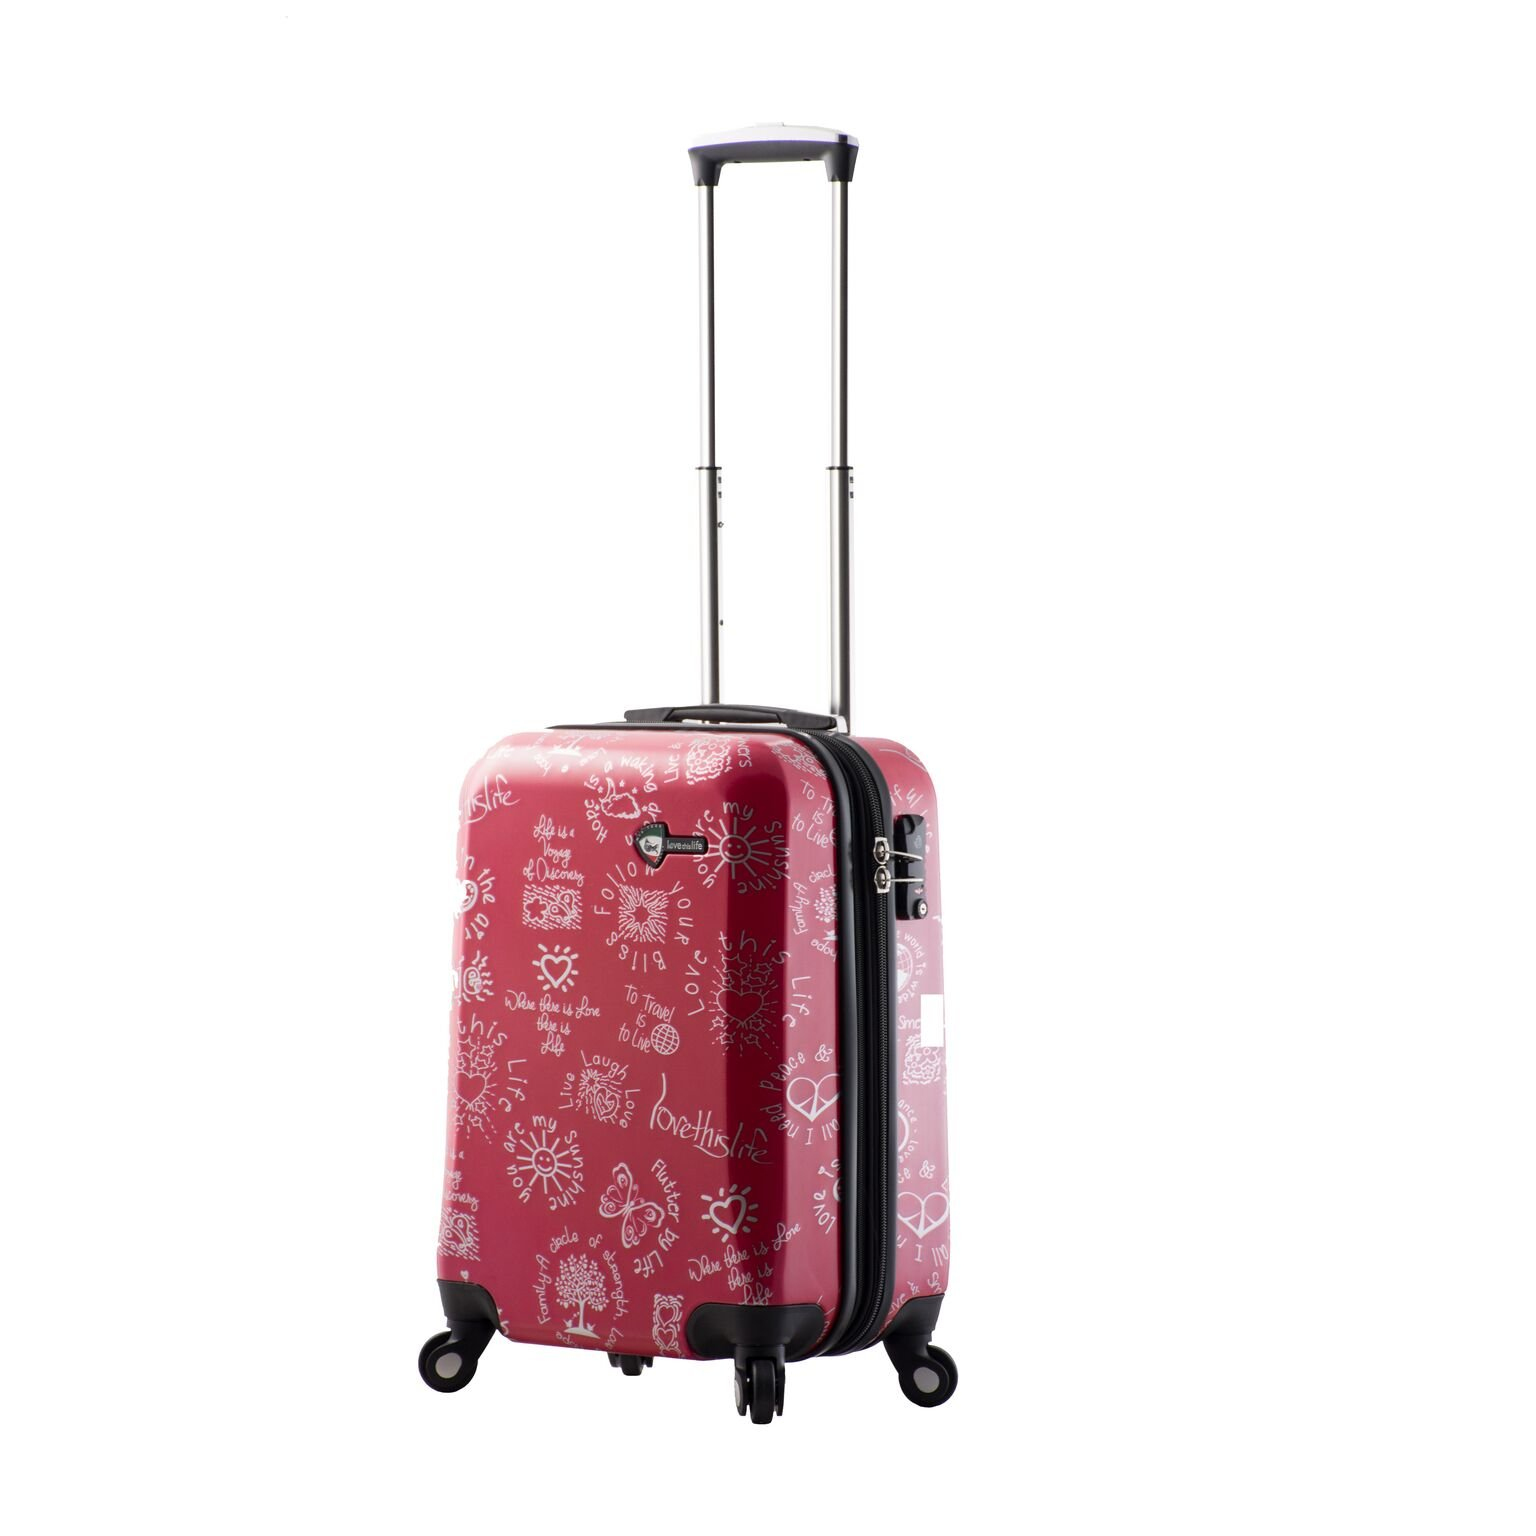 Mia Toro M1089-20in-Red Love This Life-Medallions Hardside Spinner Luggage 20'' Carry-on, Red